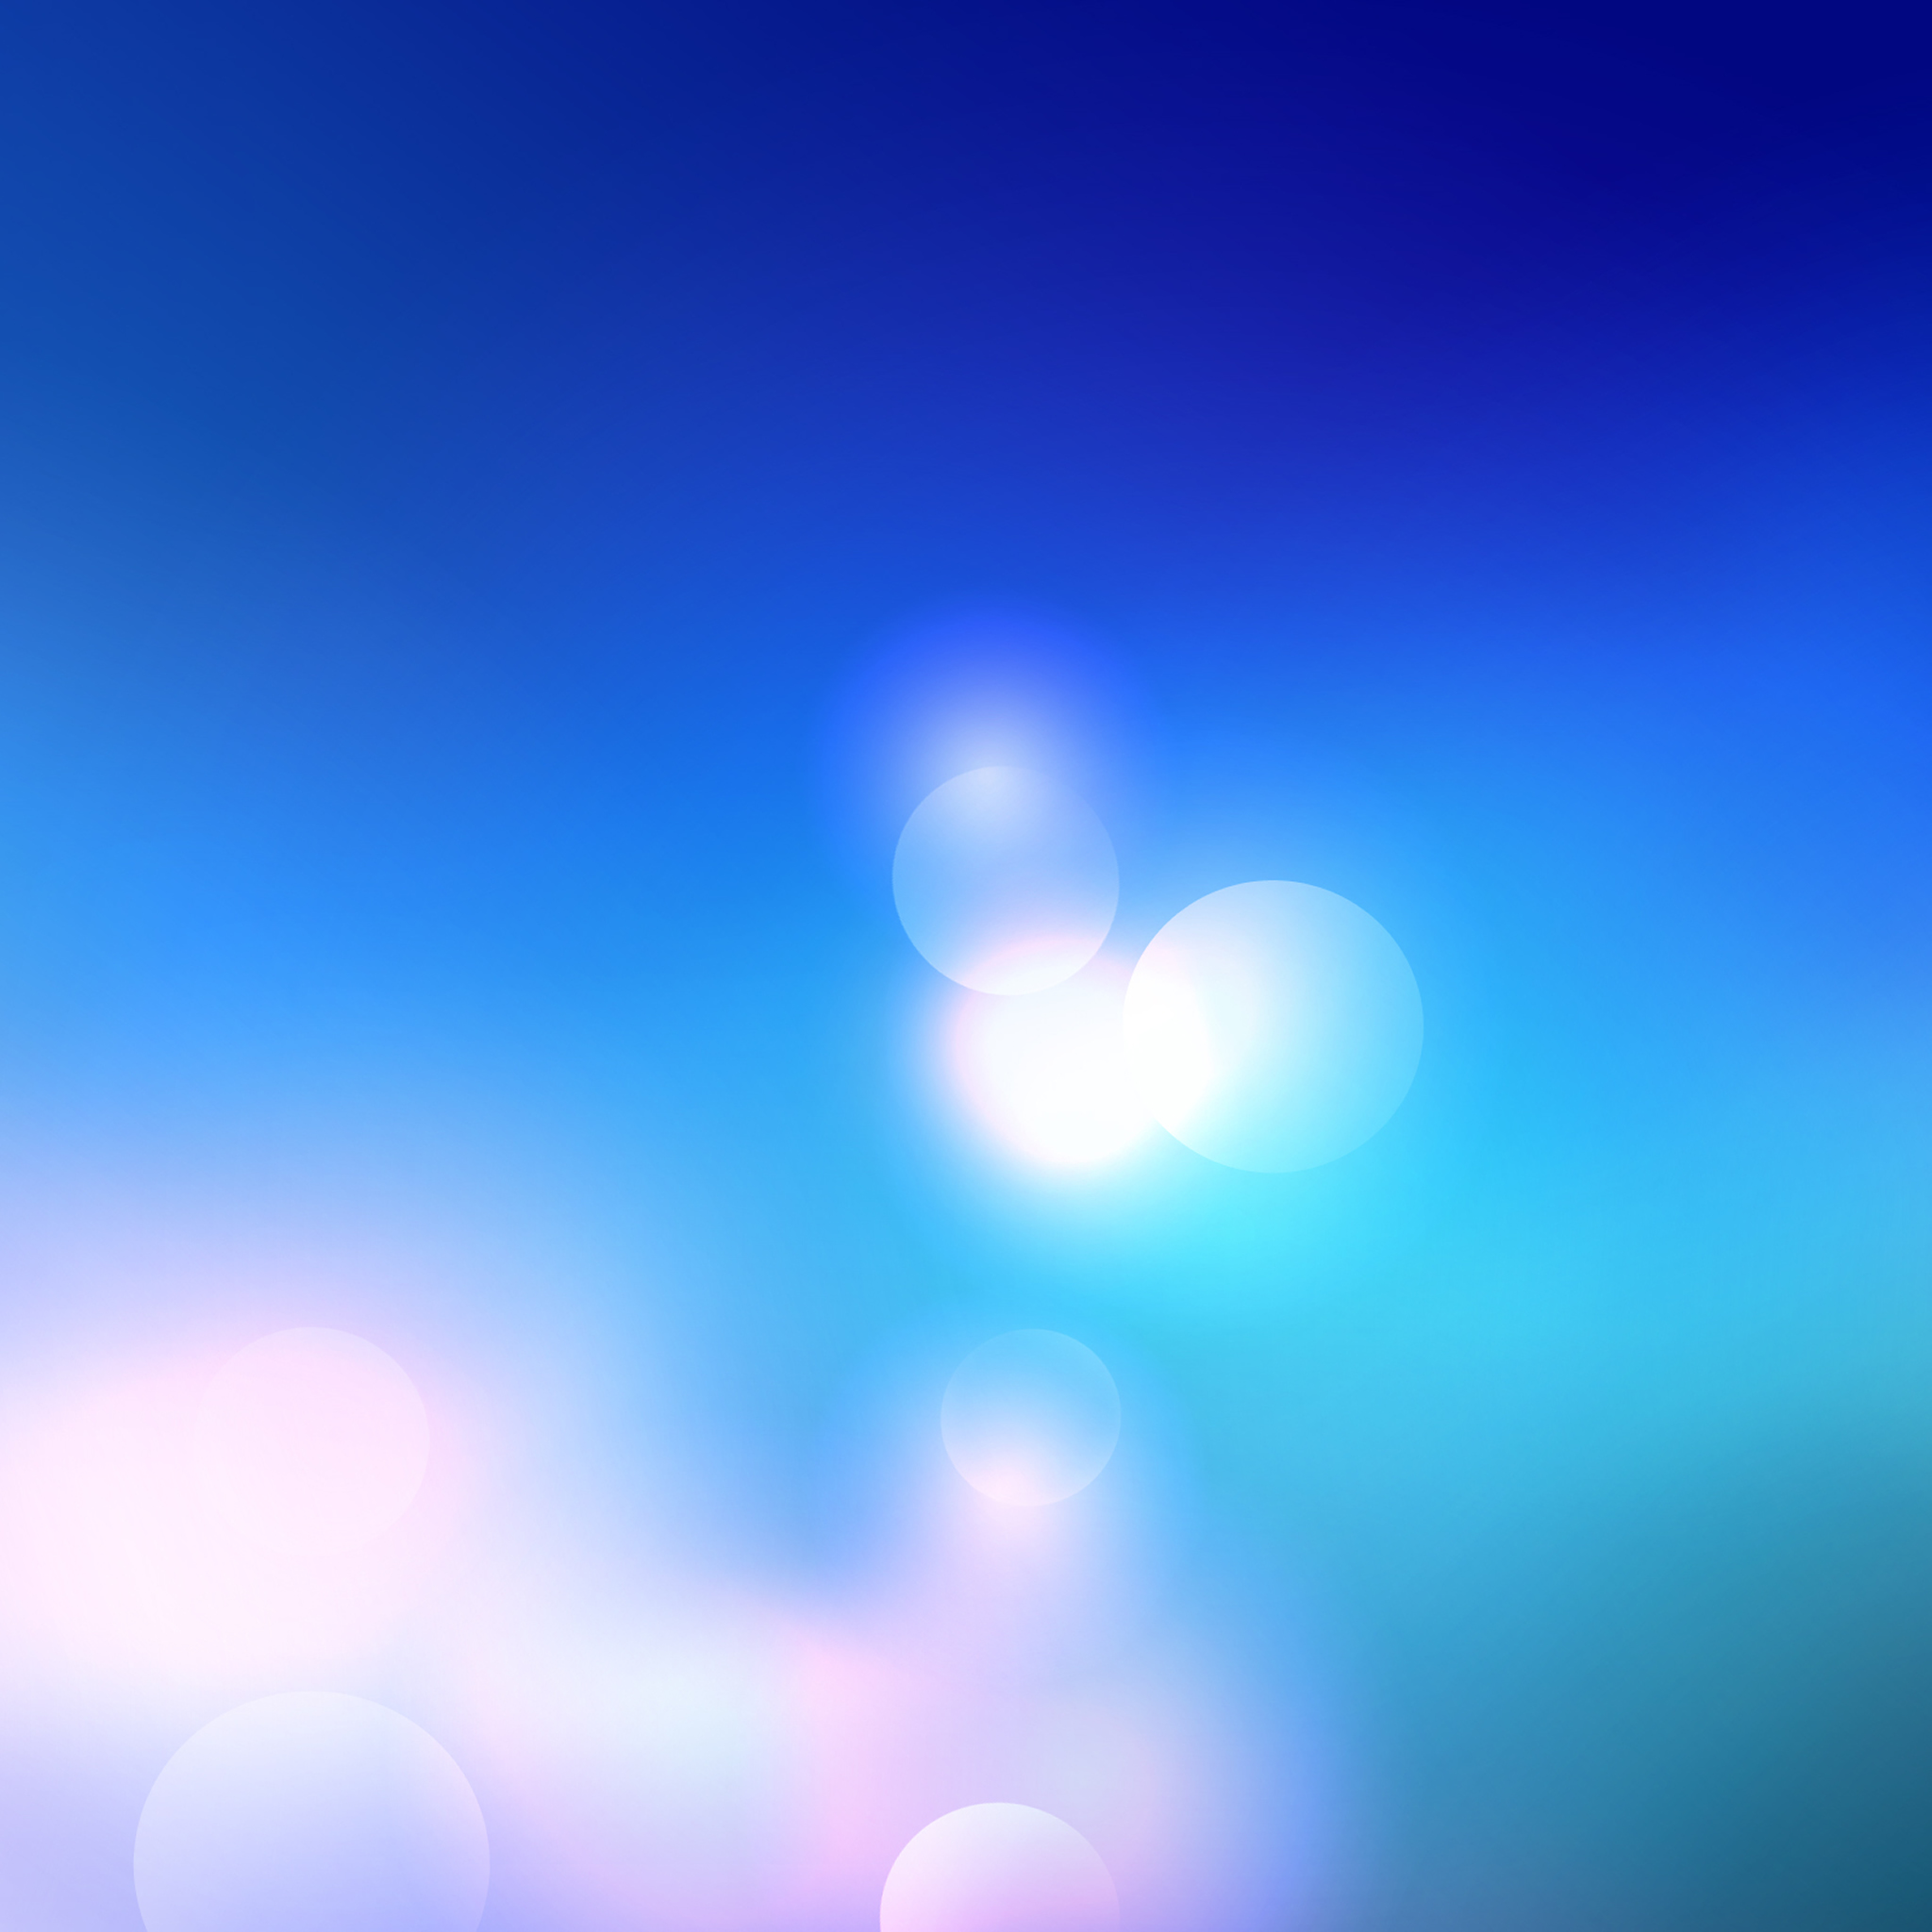 Bokeh iPad Air Wallpaper Download iPhone Wallpapers iPad wallpapers 2048x2048